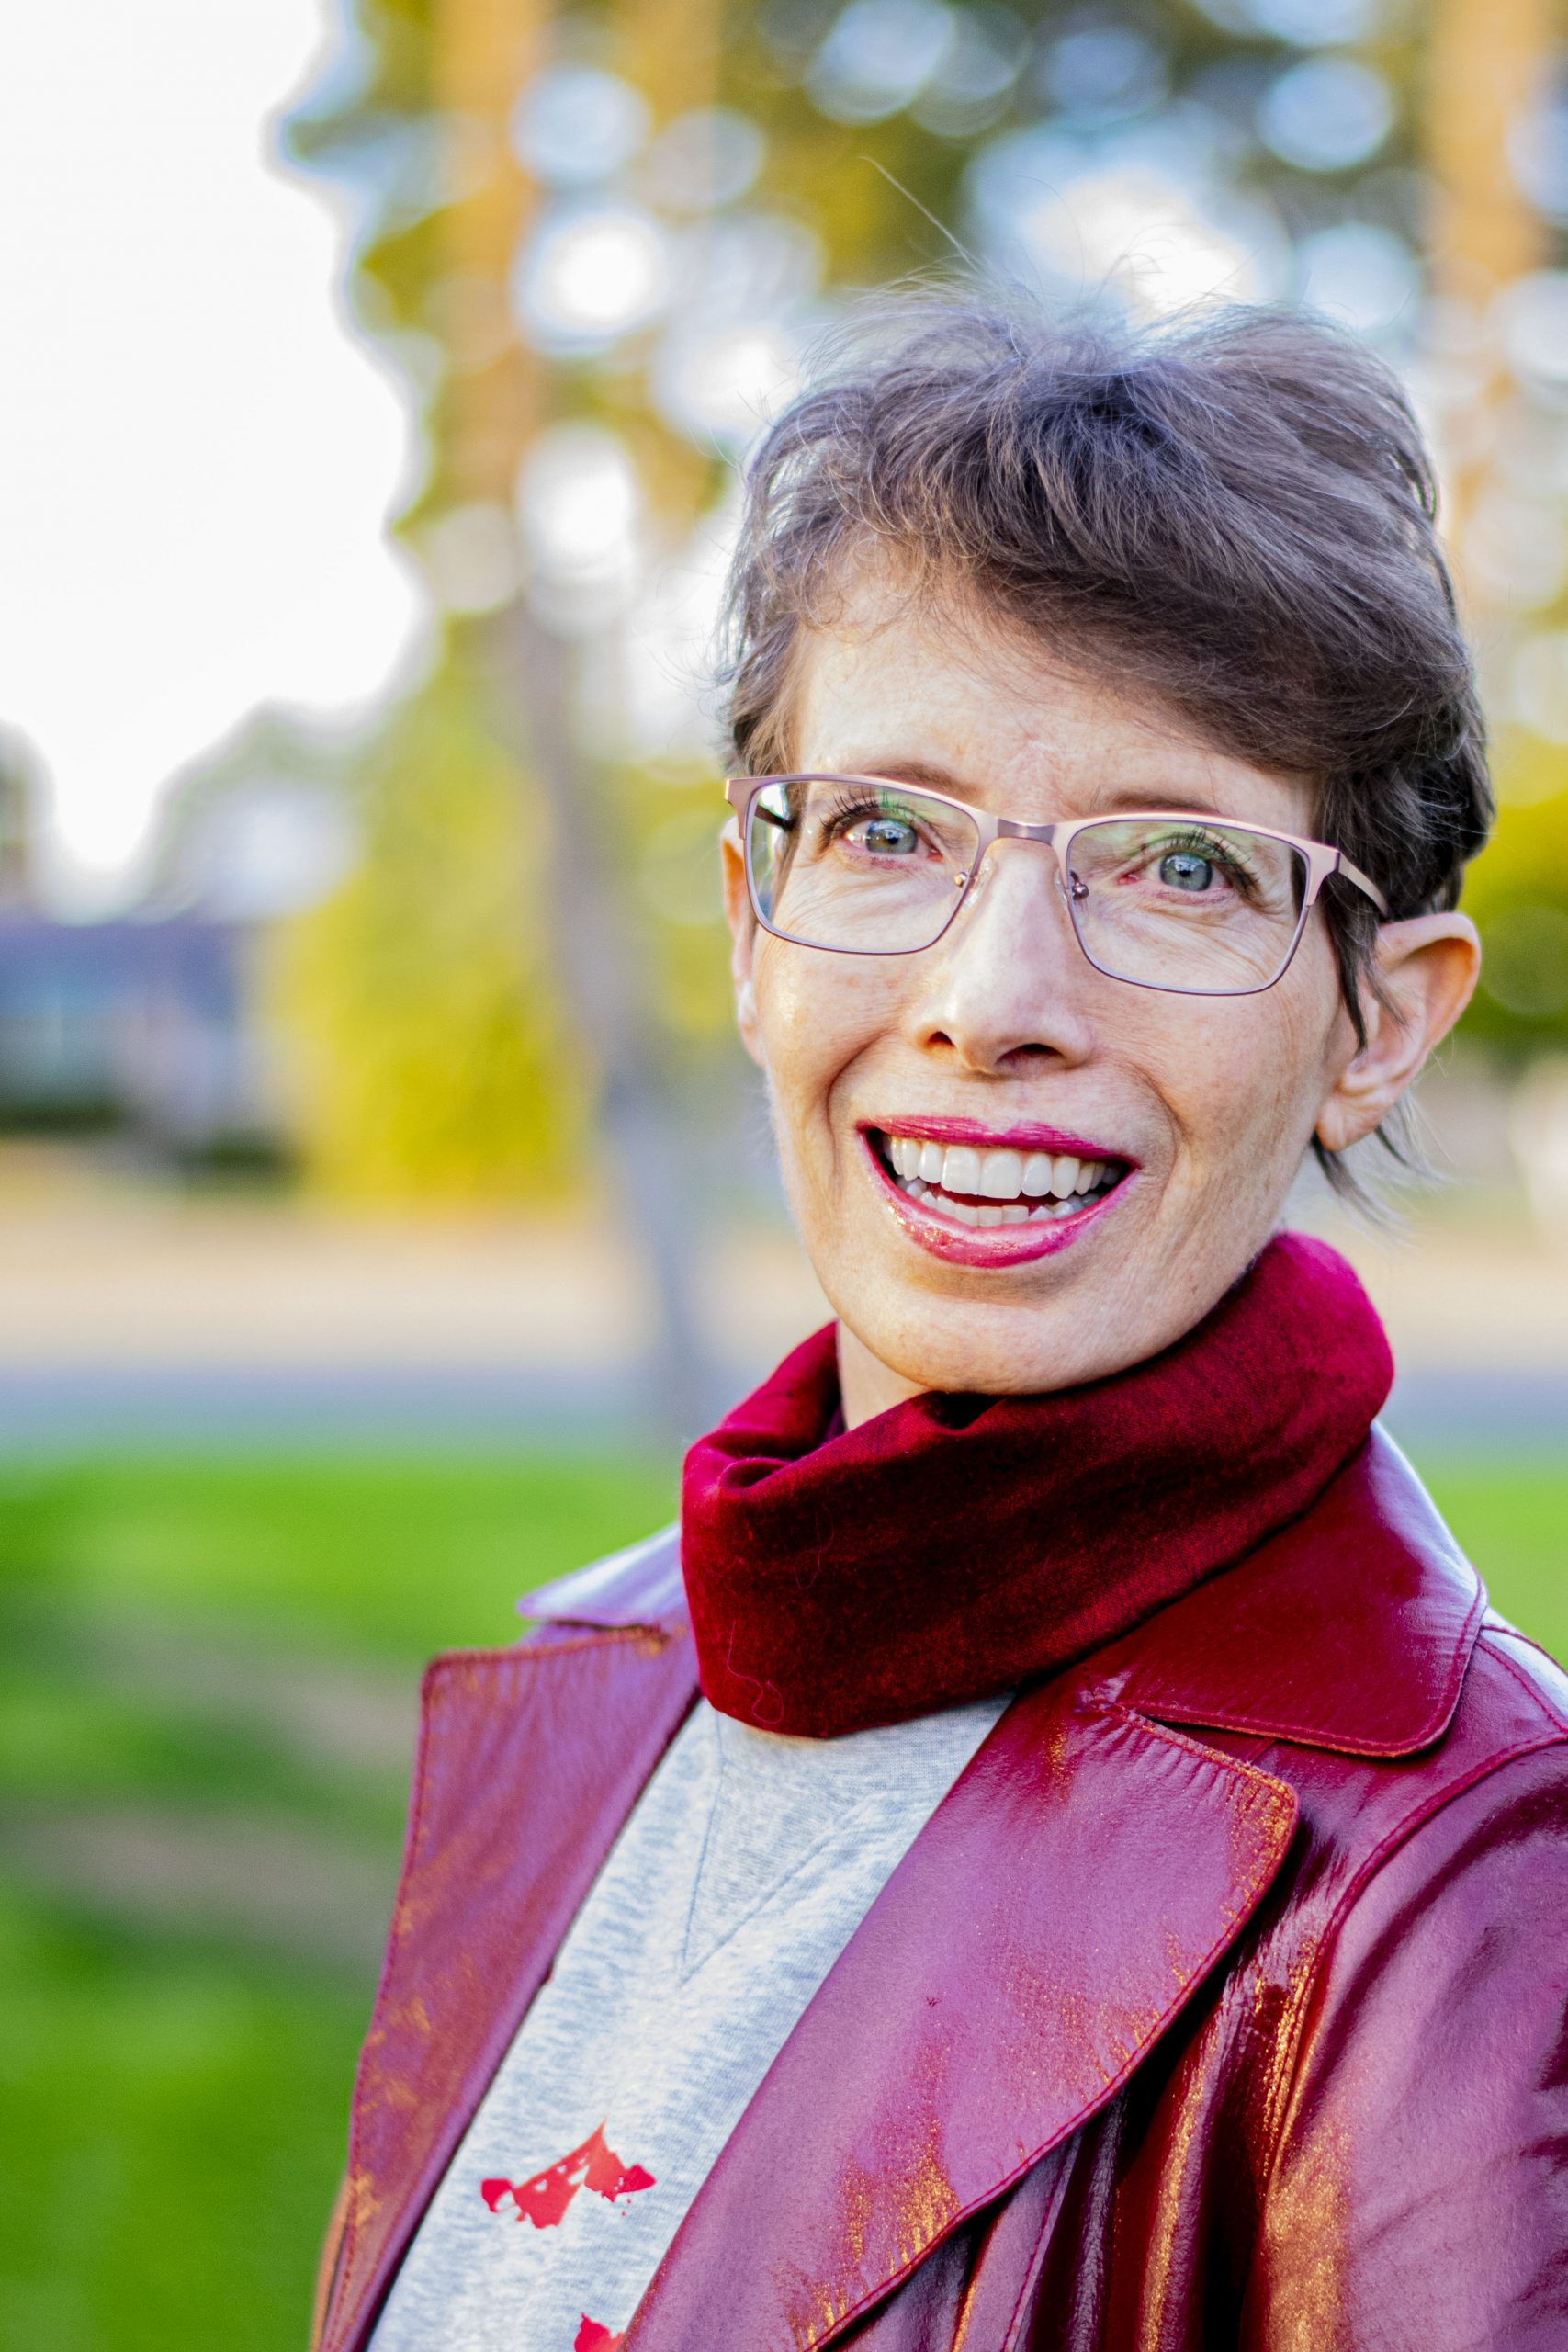 How to Pick the Right Glasses Frame for Your Face and Tips for Online Glasses